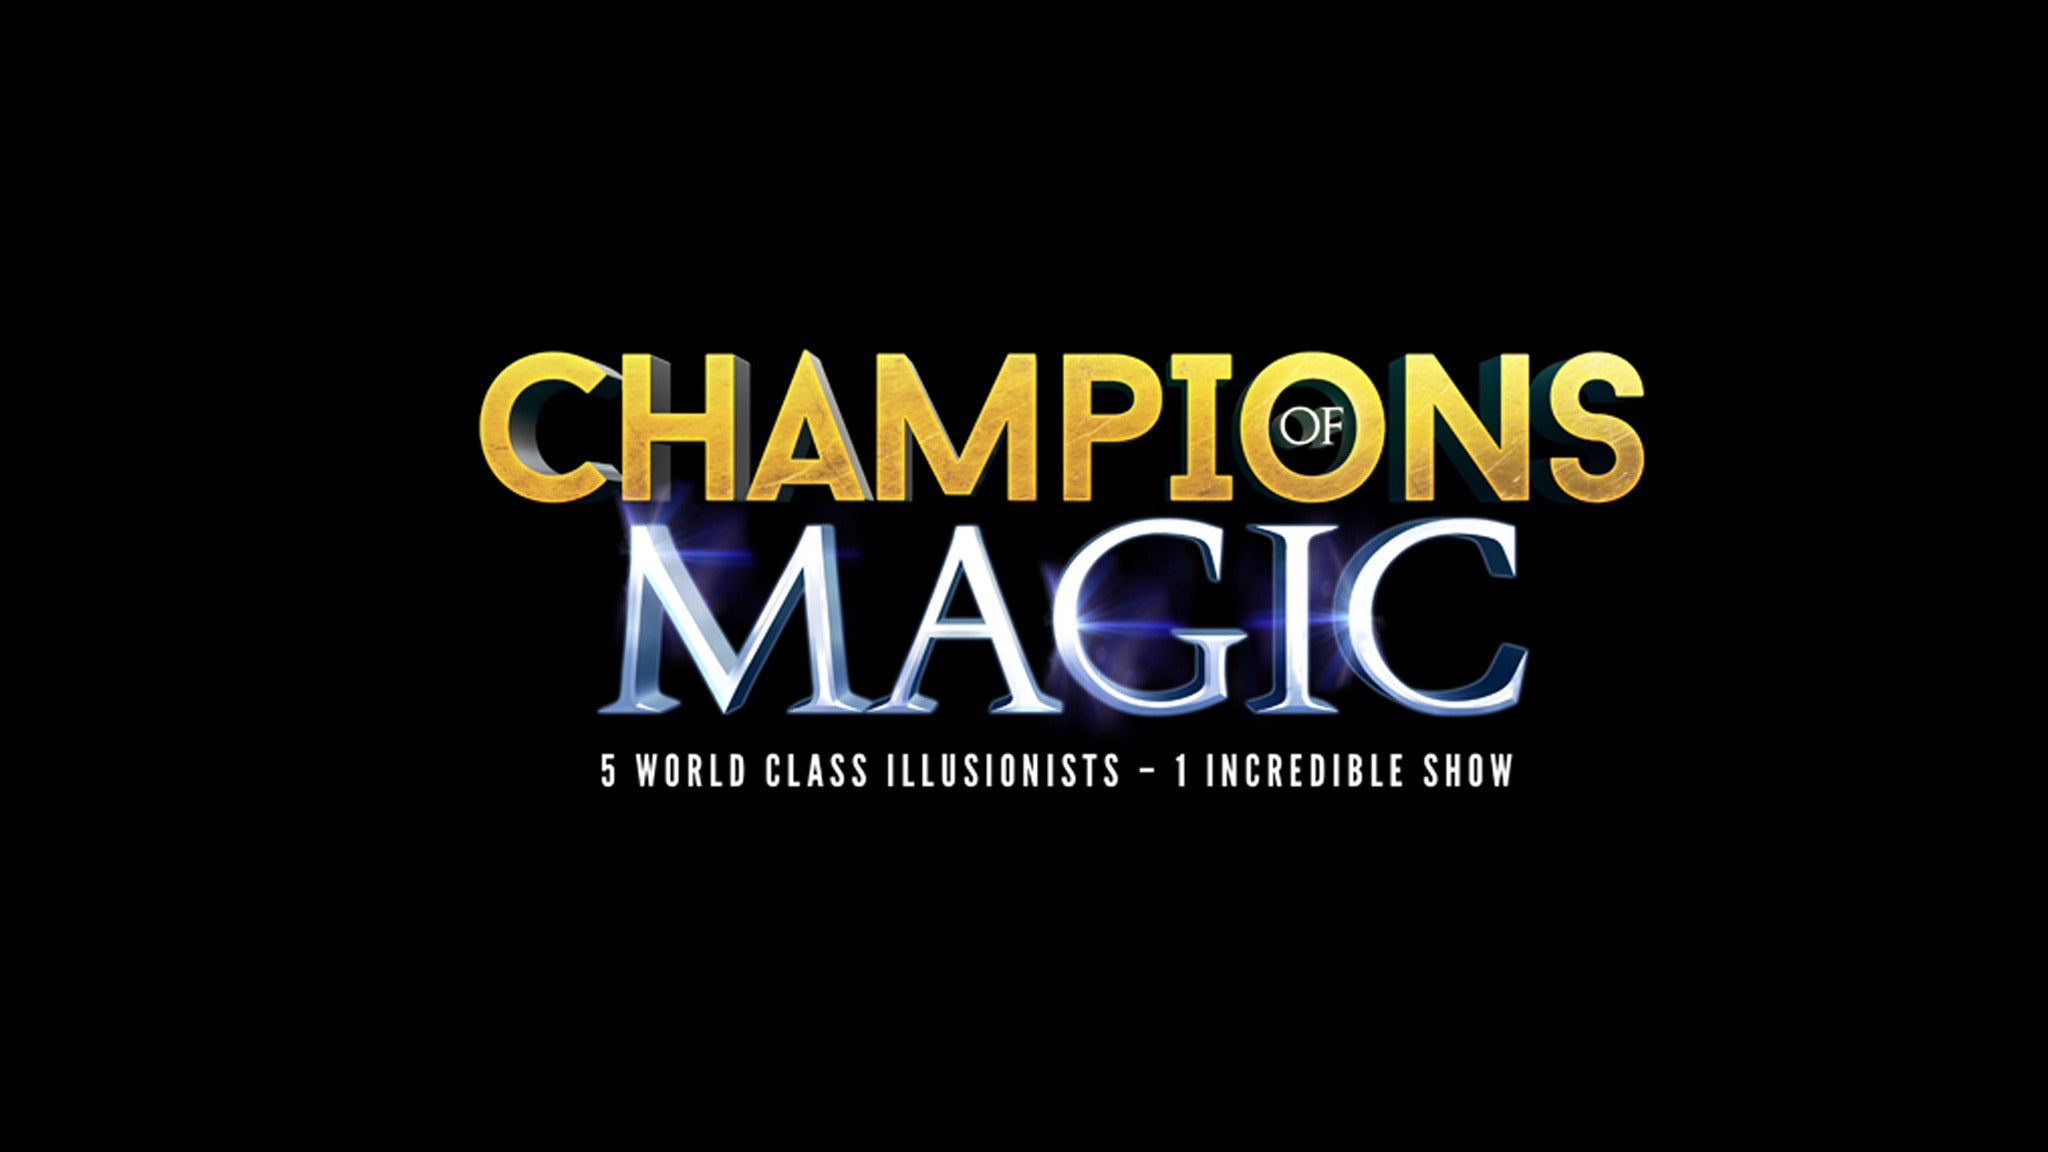 Champions of Magic at Microsoft Theatre LA Live - Los Angeles, CA 90015